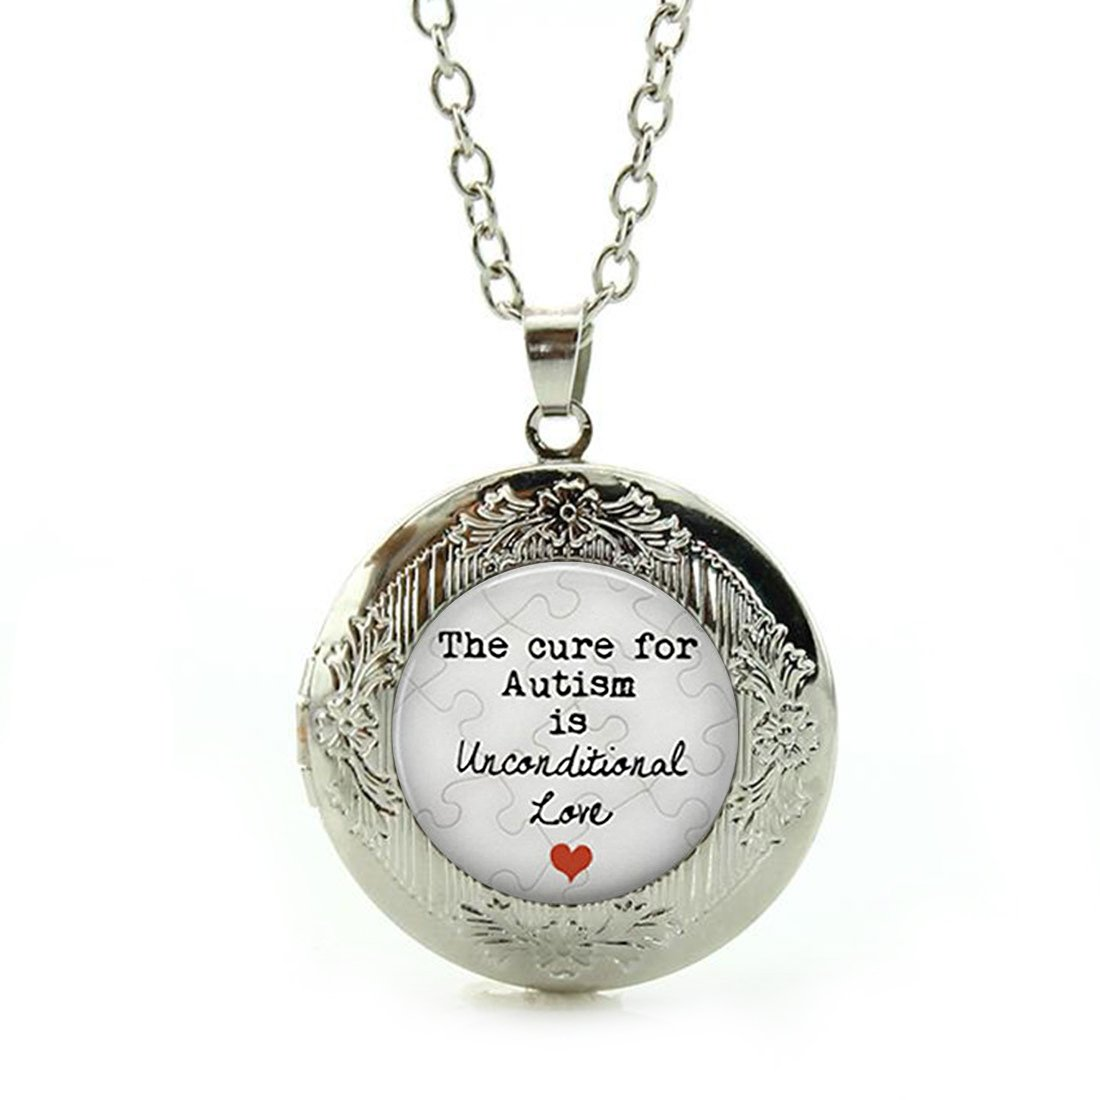 Women's Custom Locket Closure Pendant Necklace The Cure For Autism Is Unconditional Love Quote Included Free Silver Chain, Best Gift Set